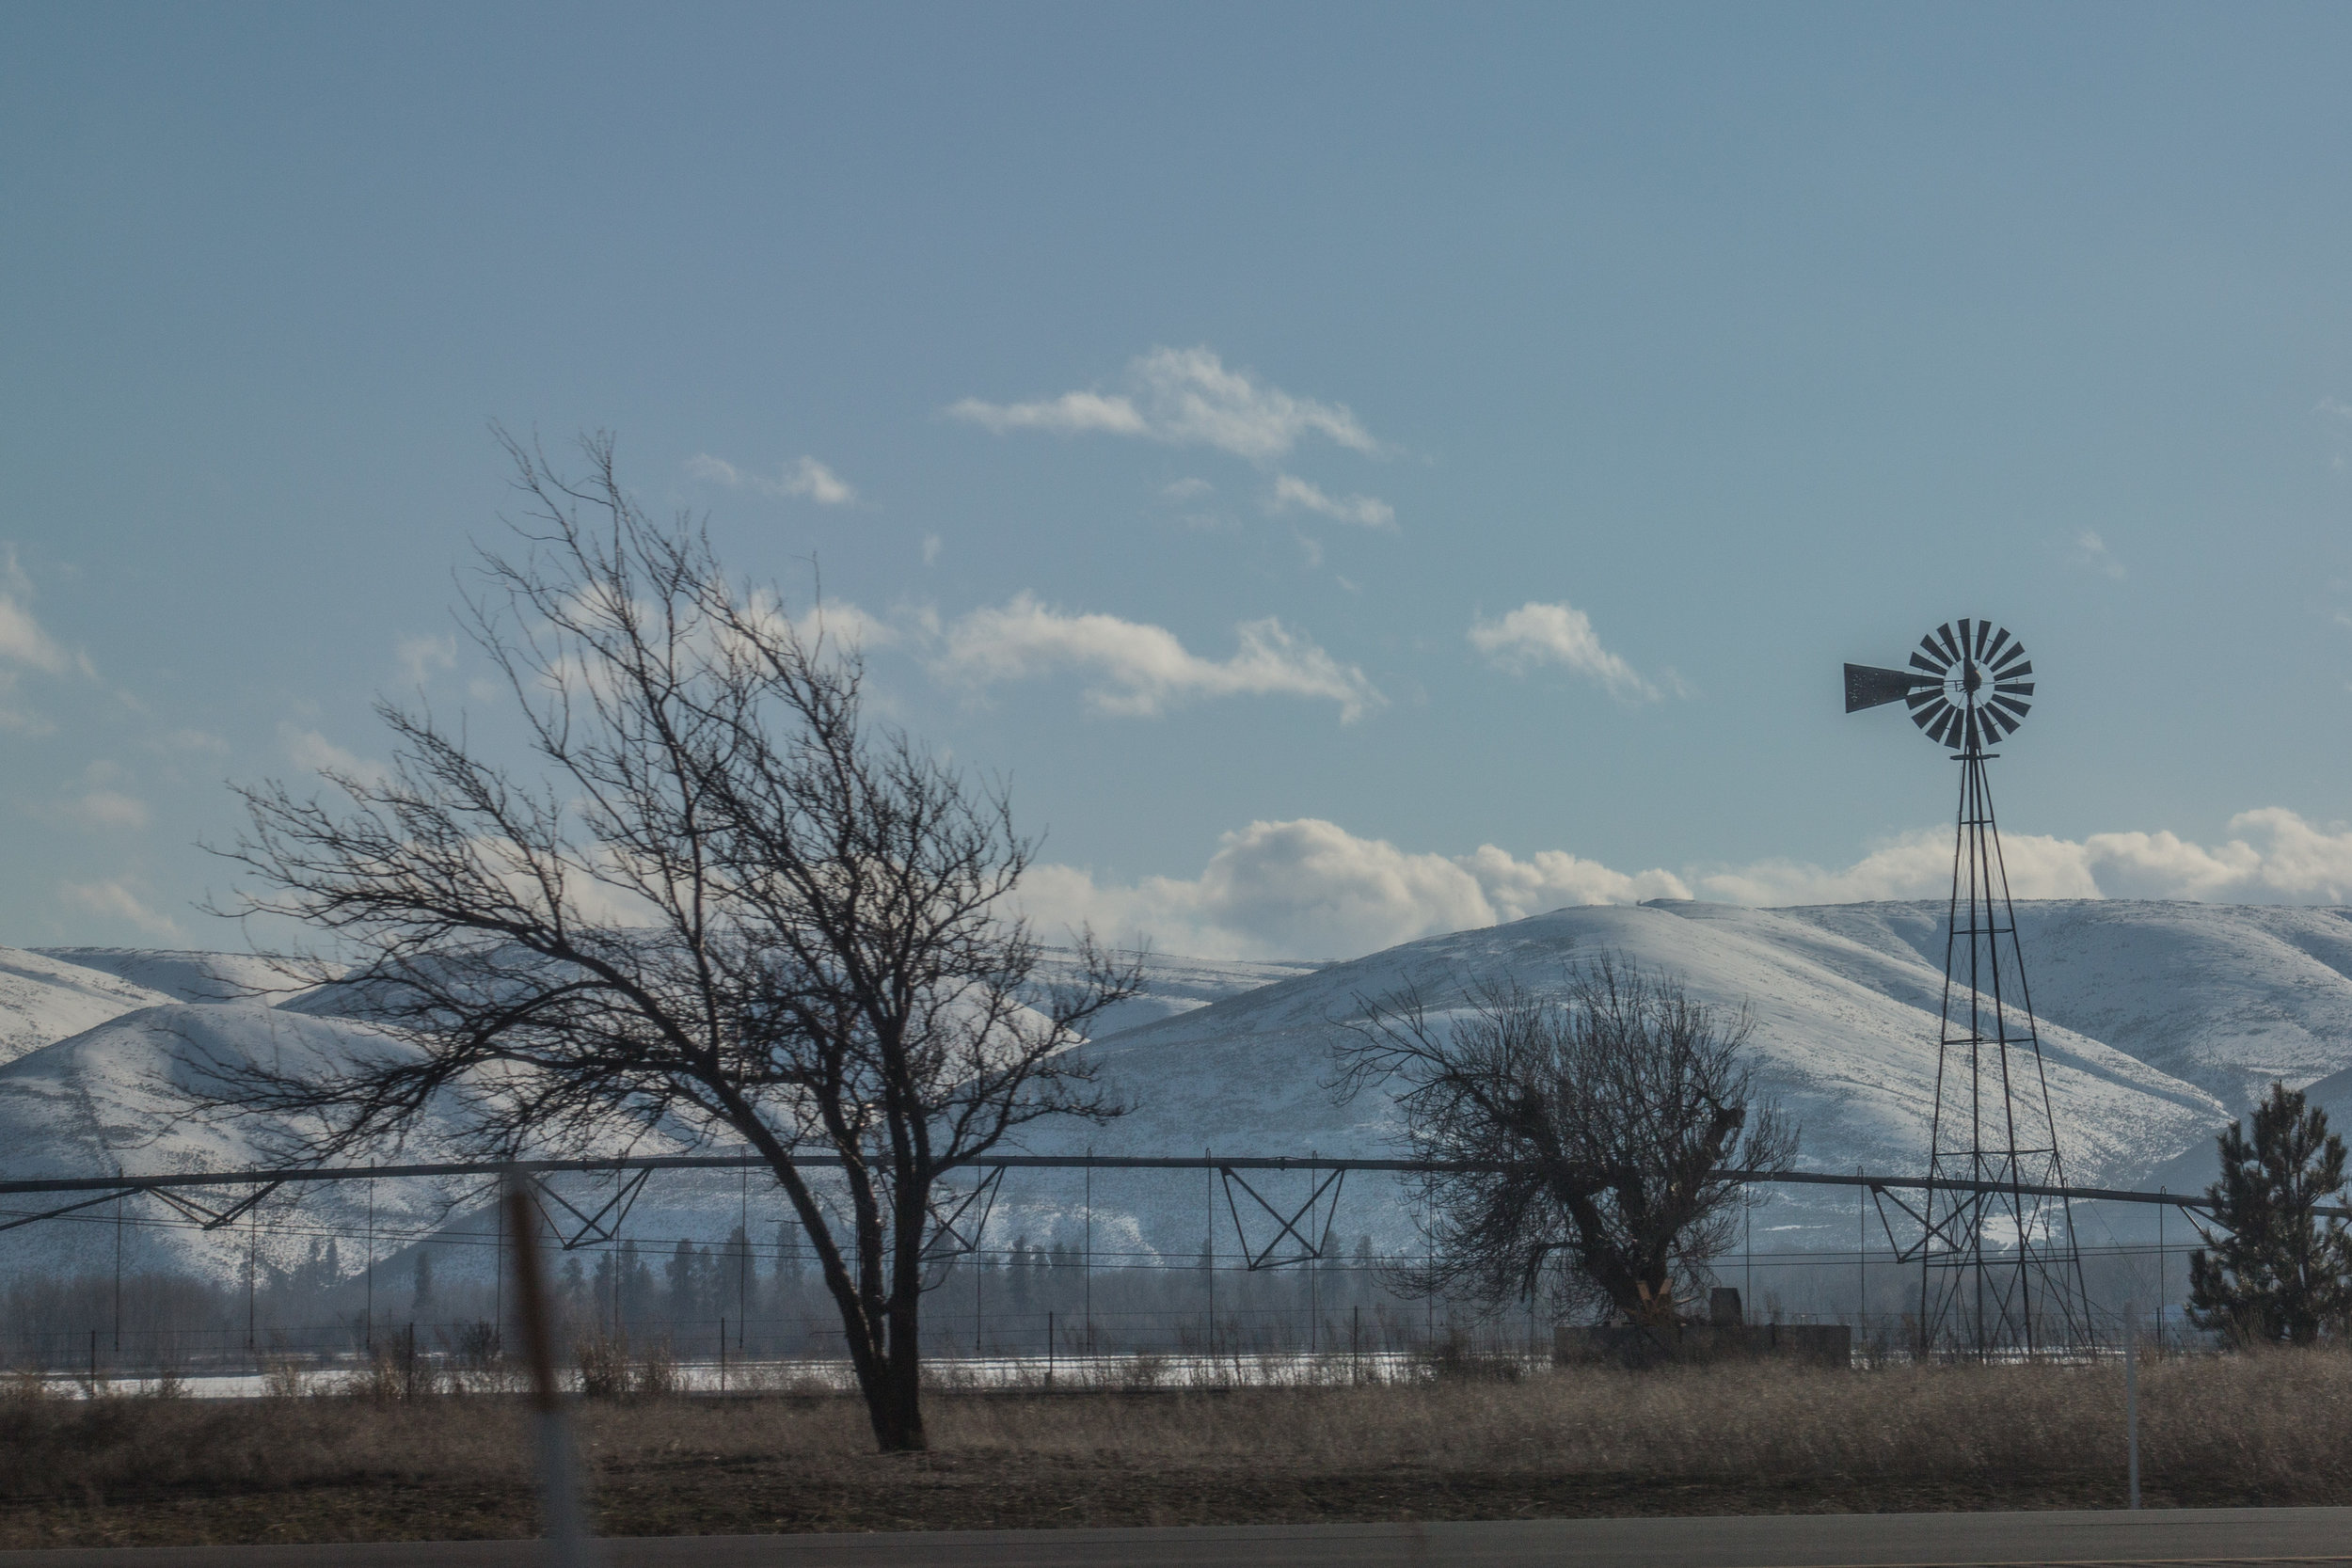 A common sight on the road to Ellensburg. Wind bent trees and weathervanes.